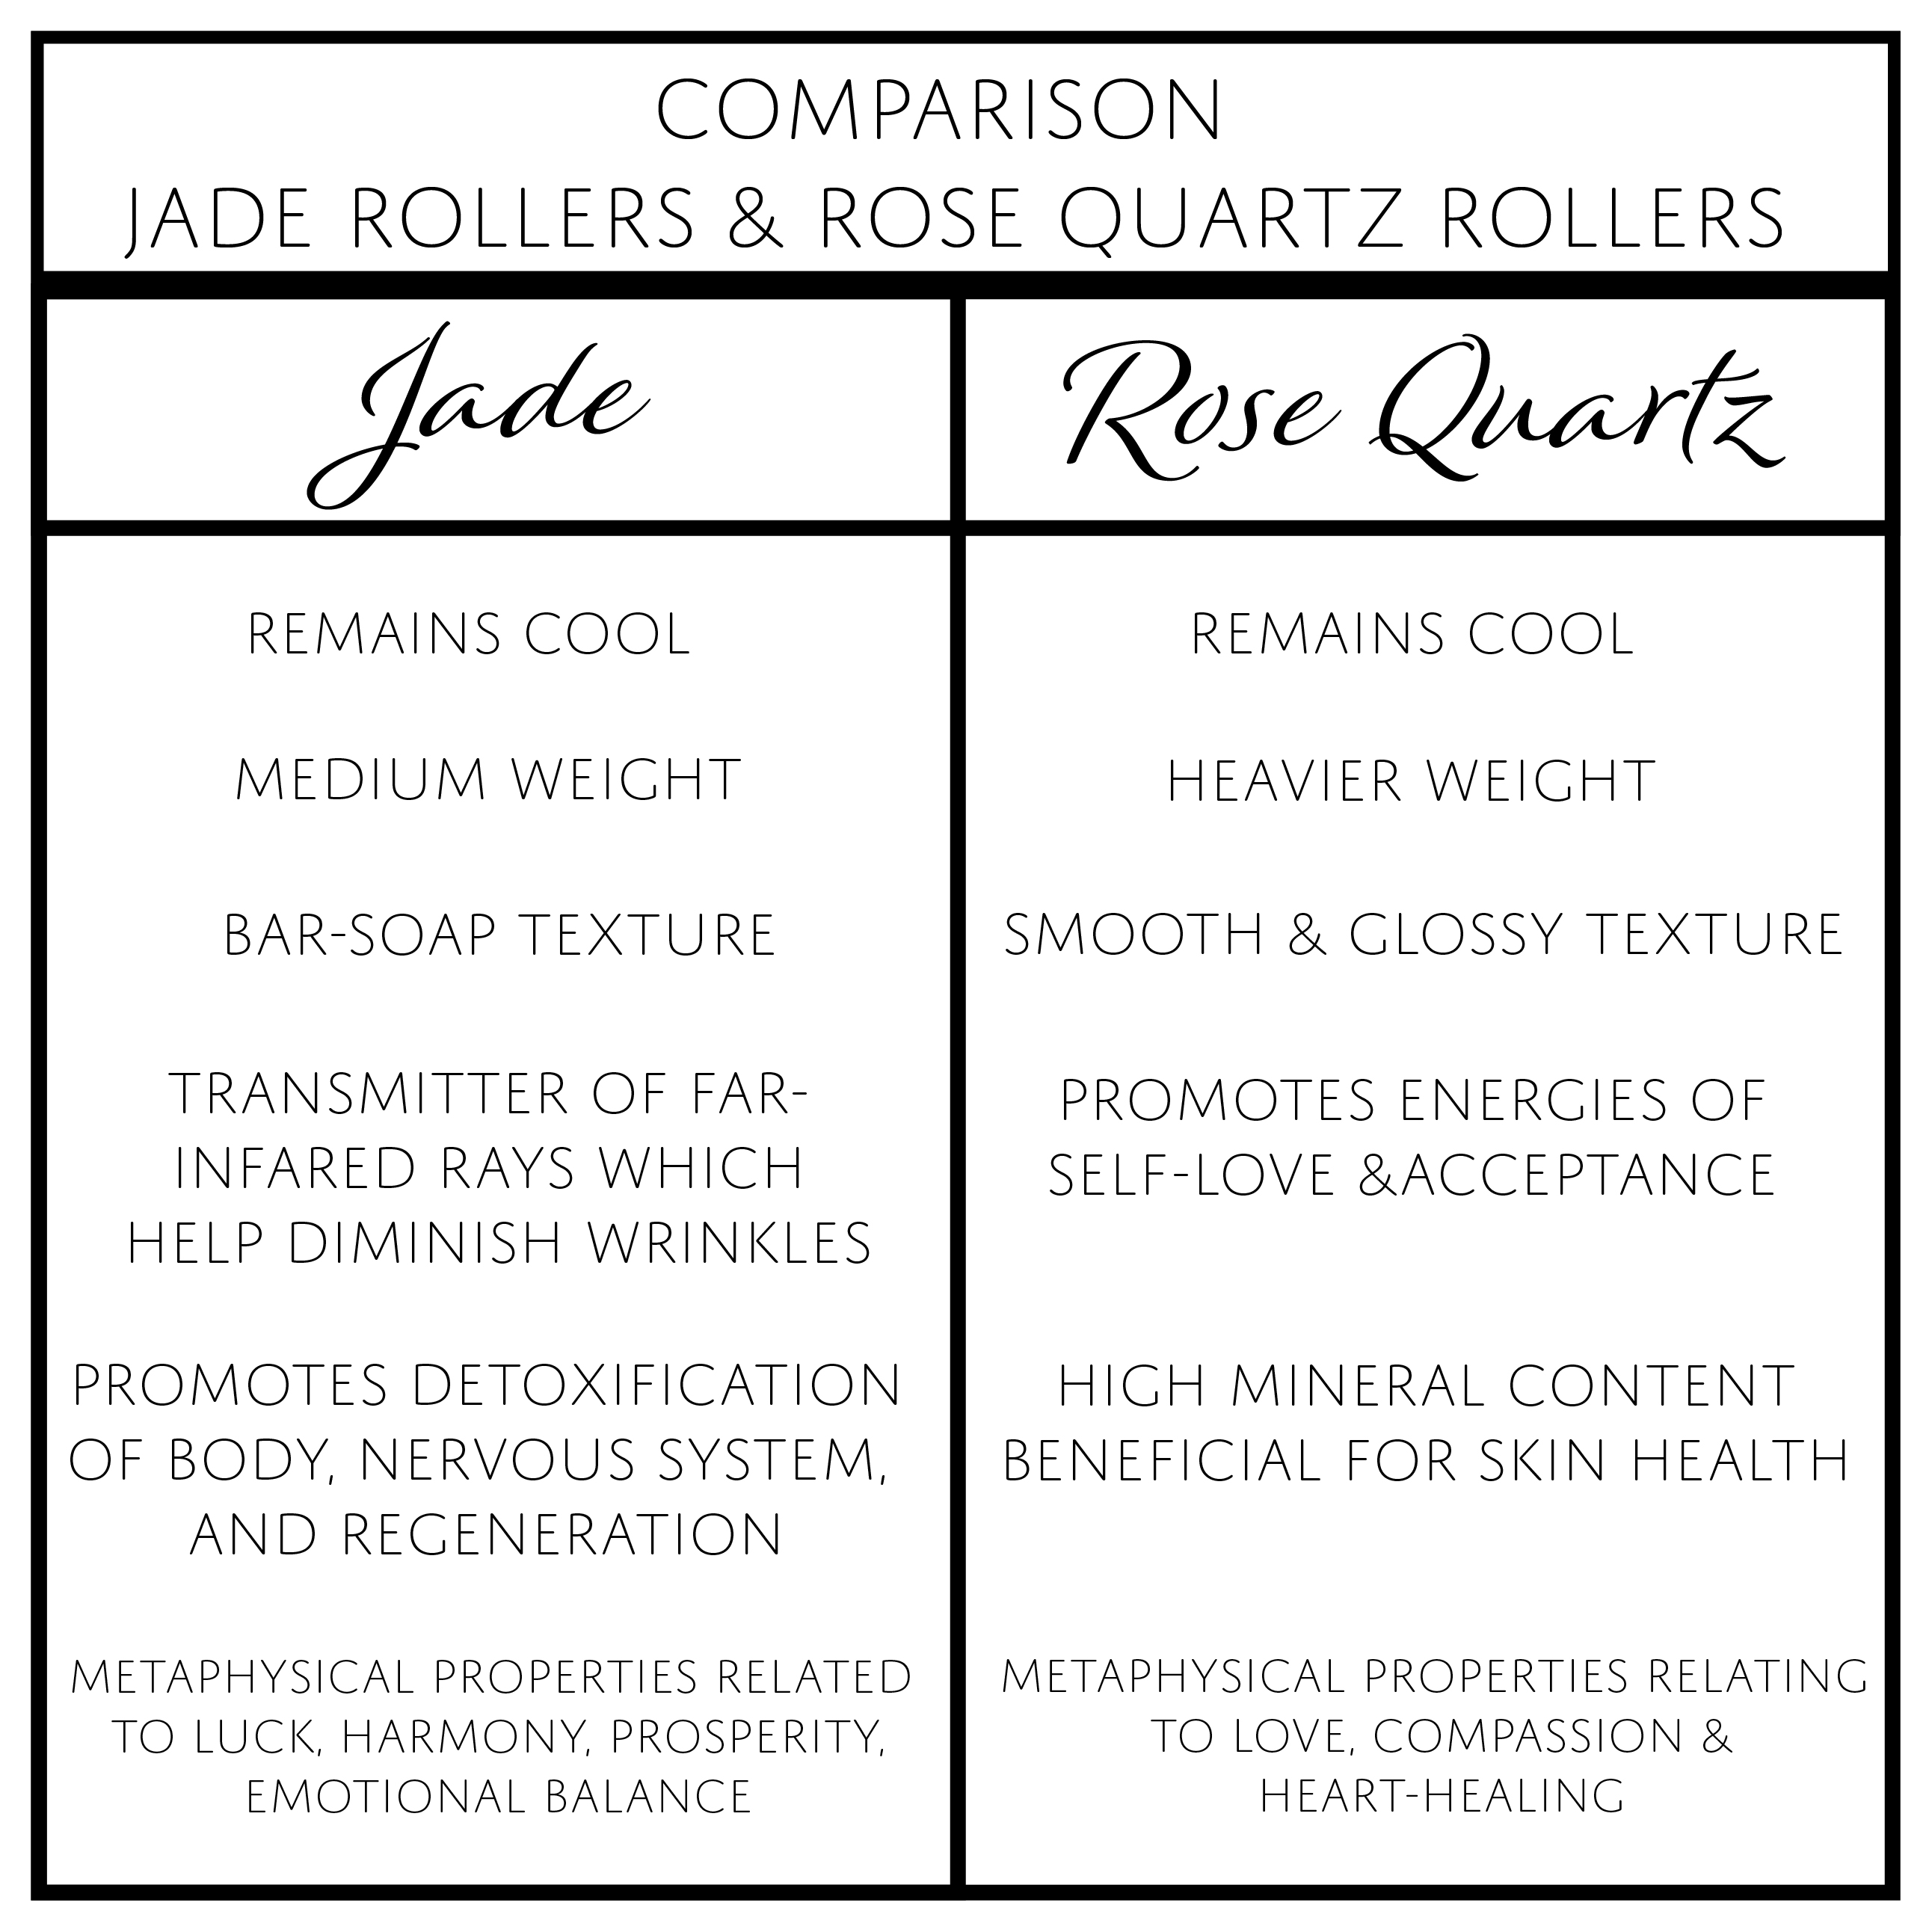 Jade Rollers vs  Rose Quartz Rollers - which is better for facial